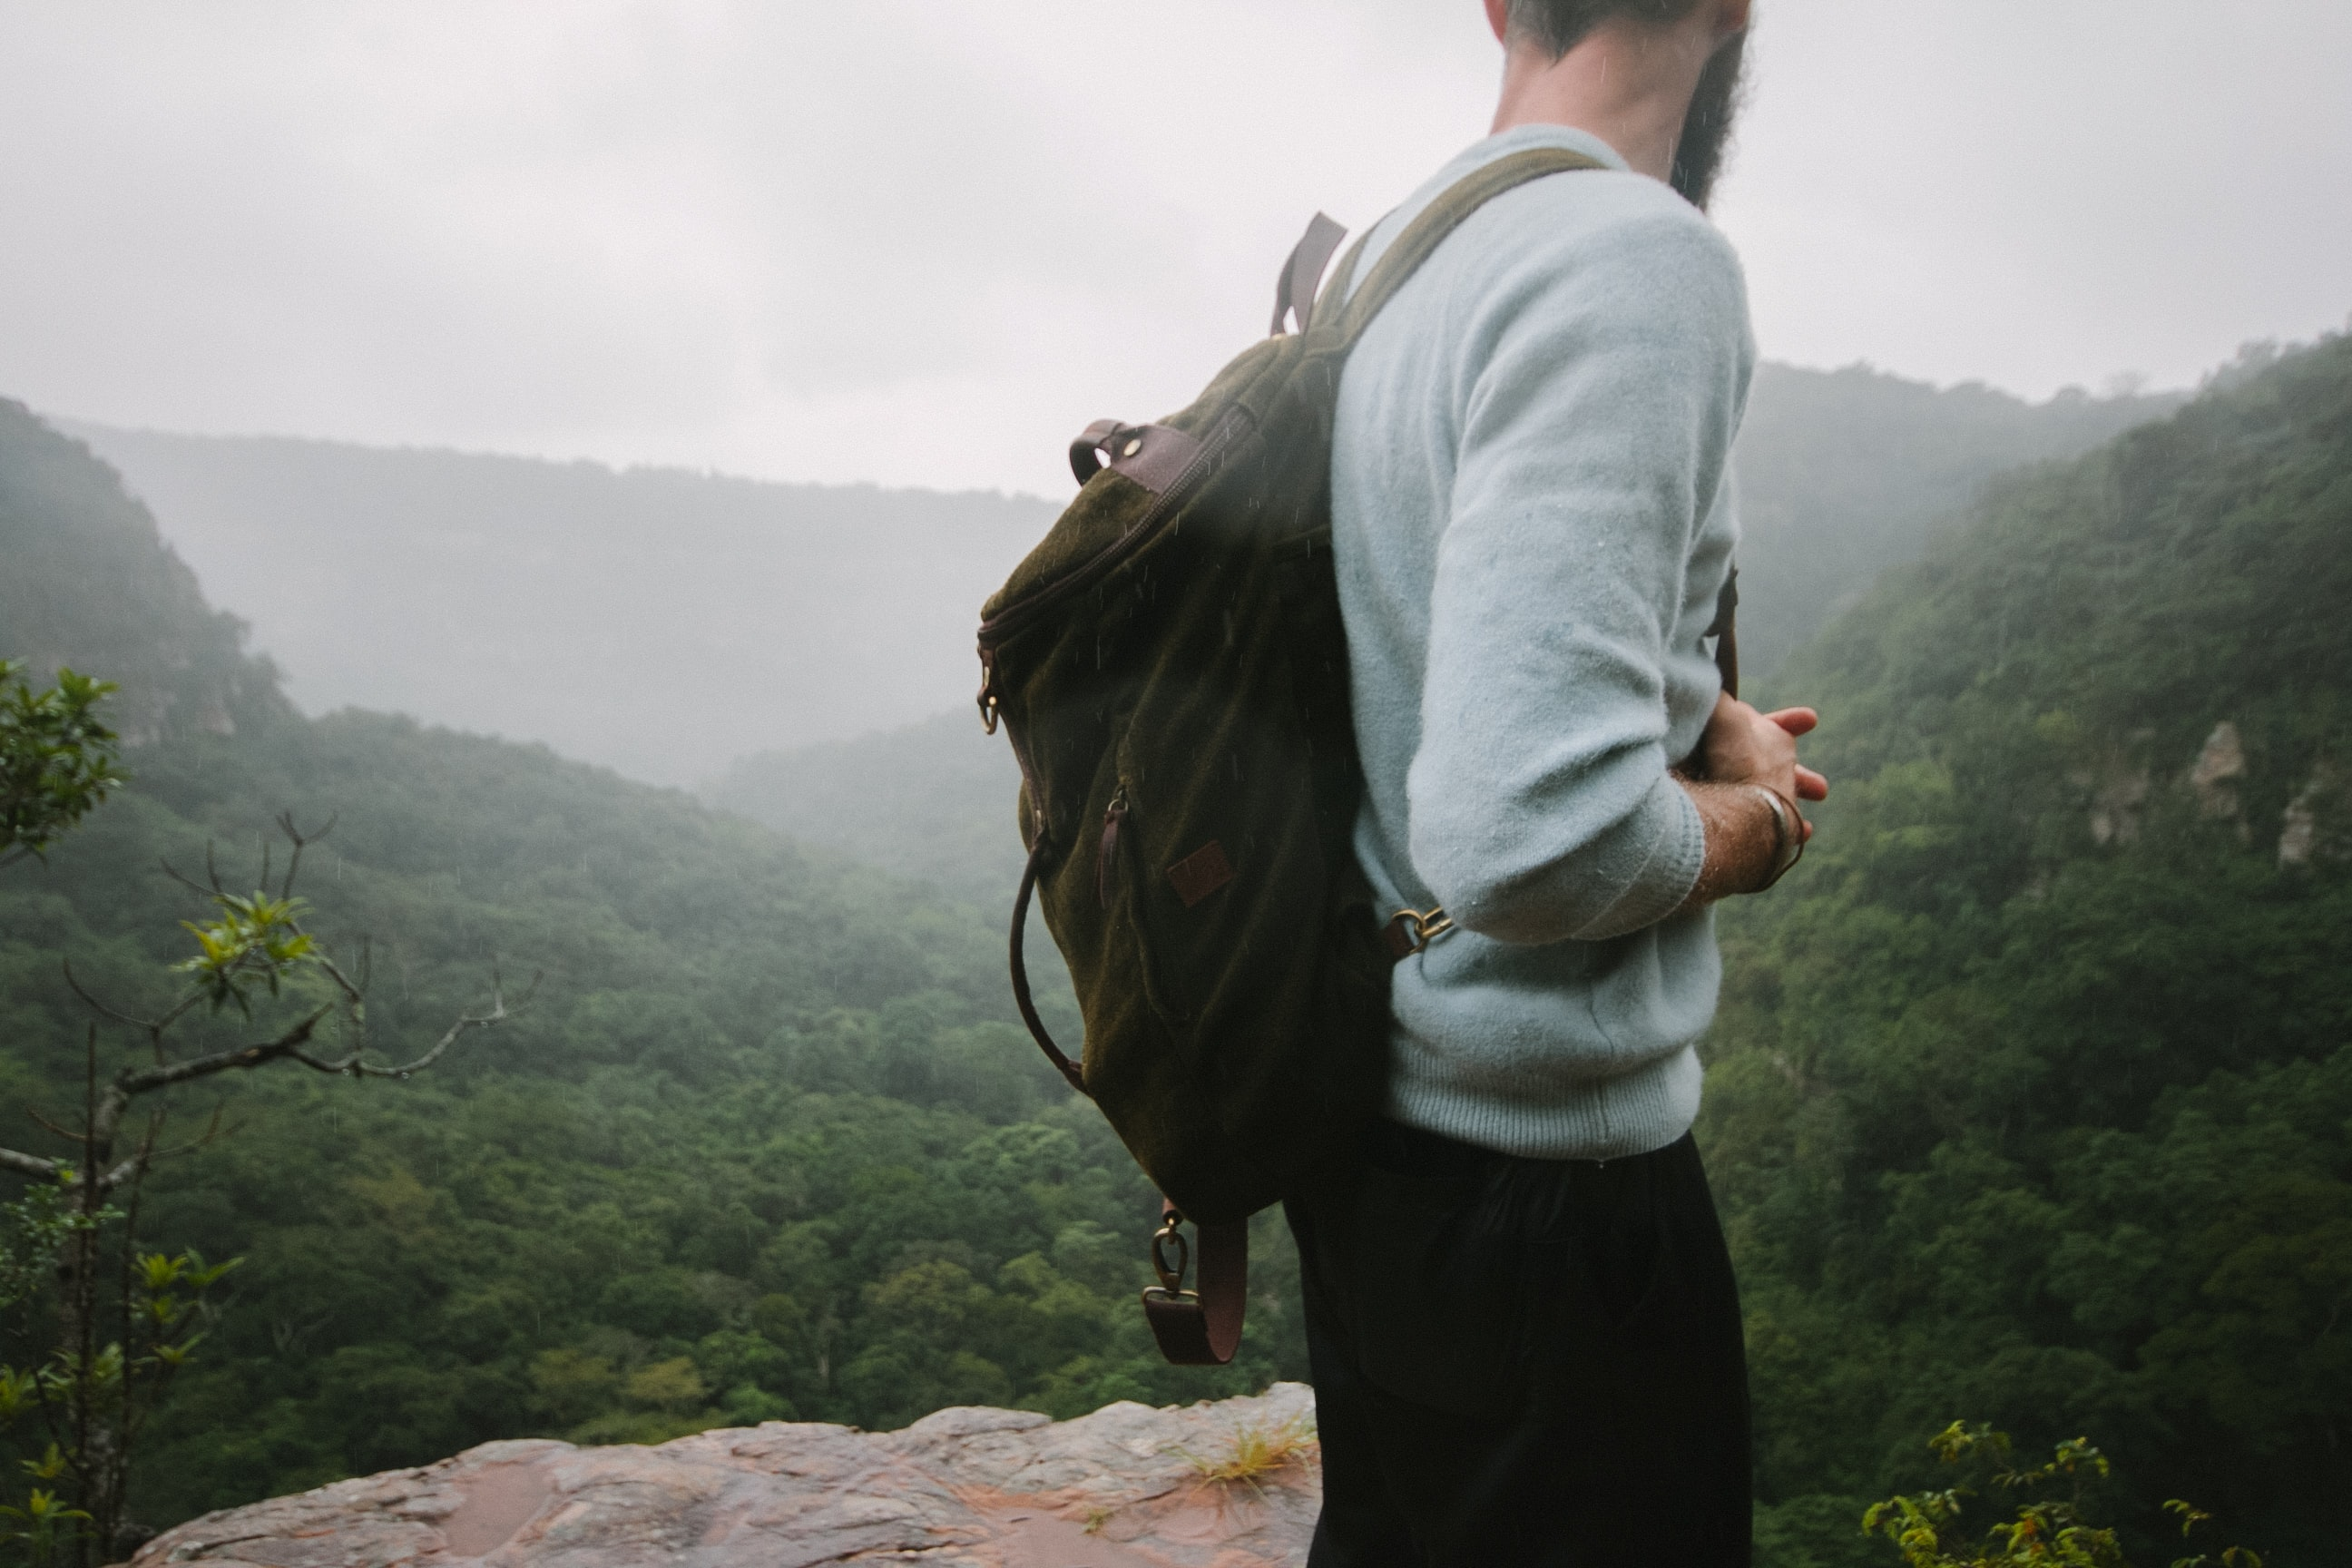 man standing on mountain top during day